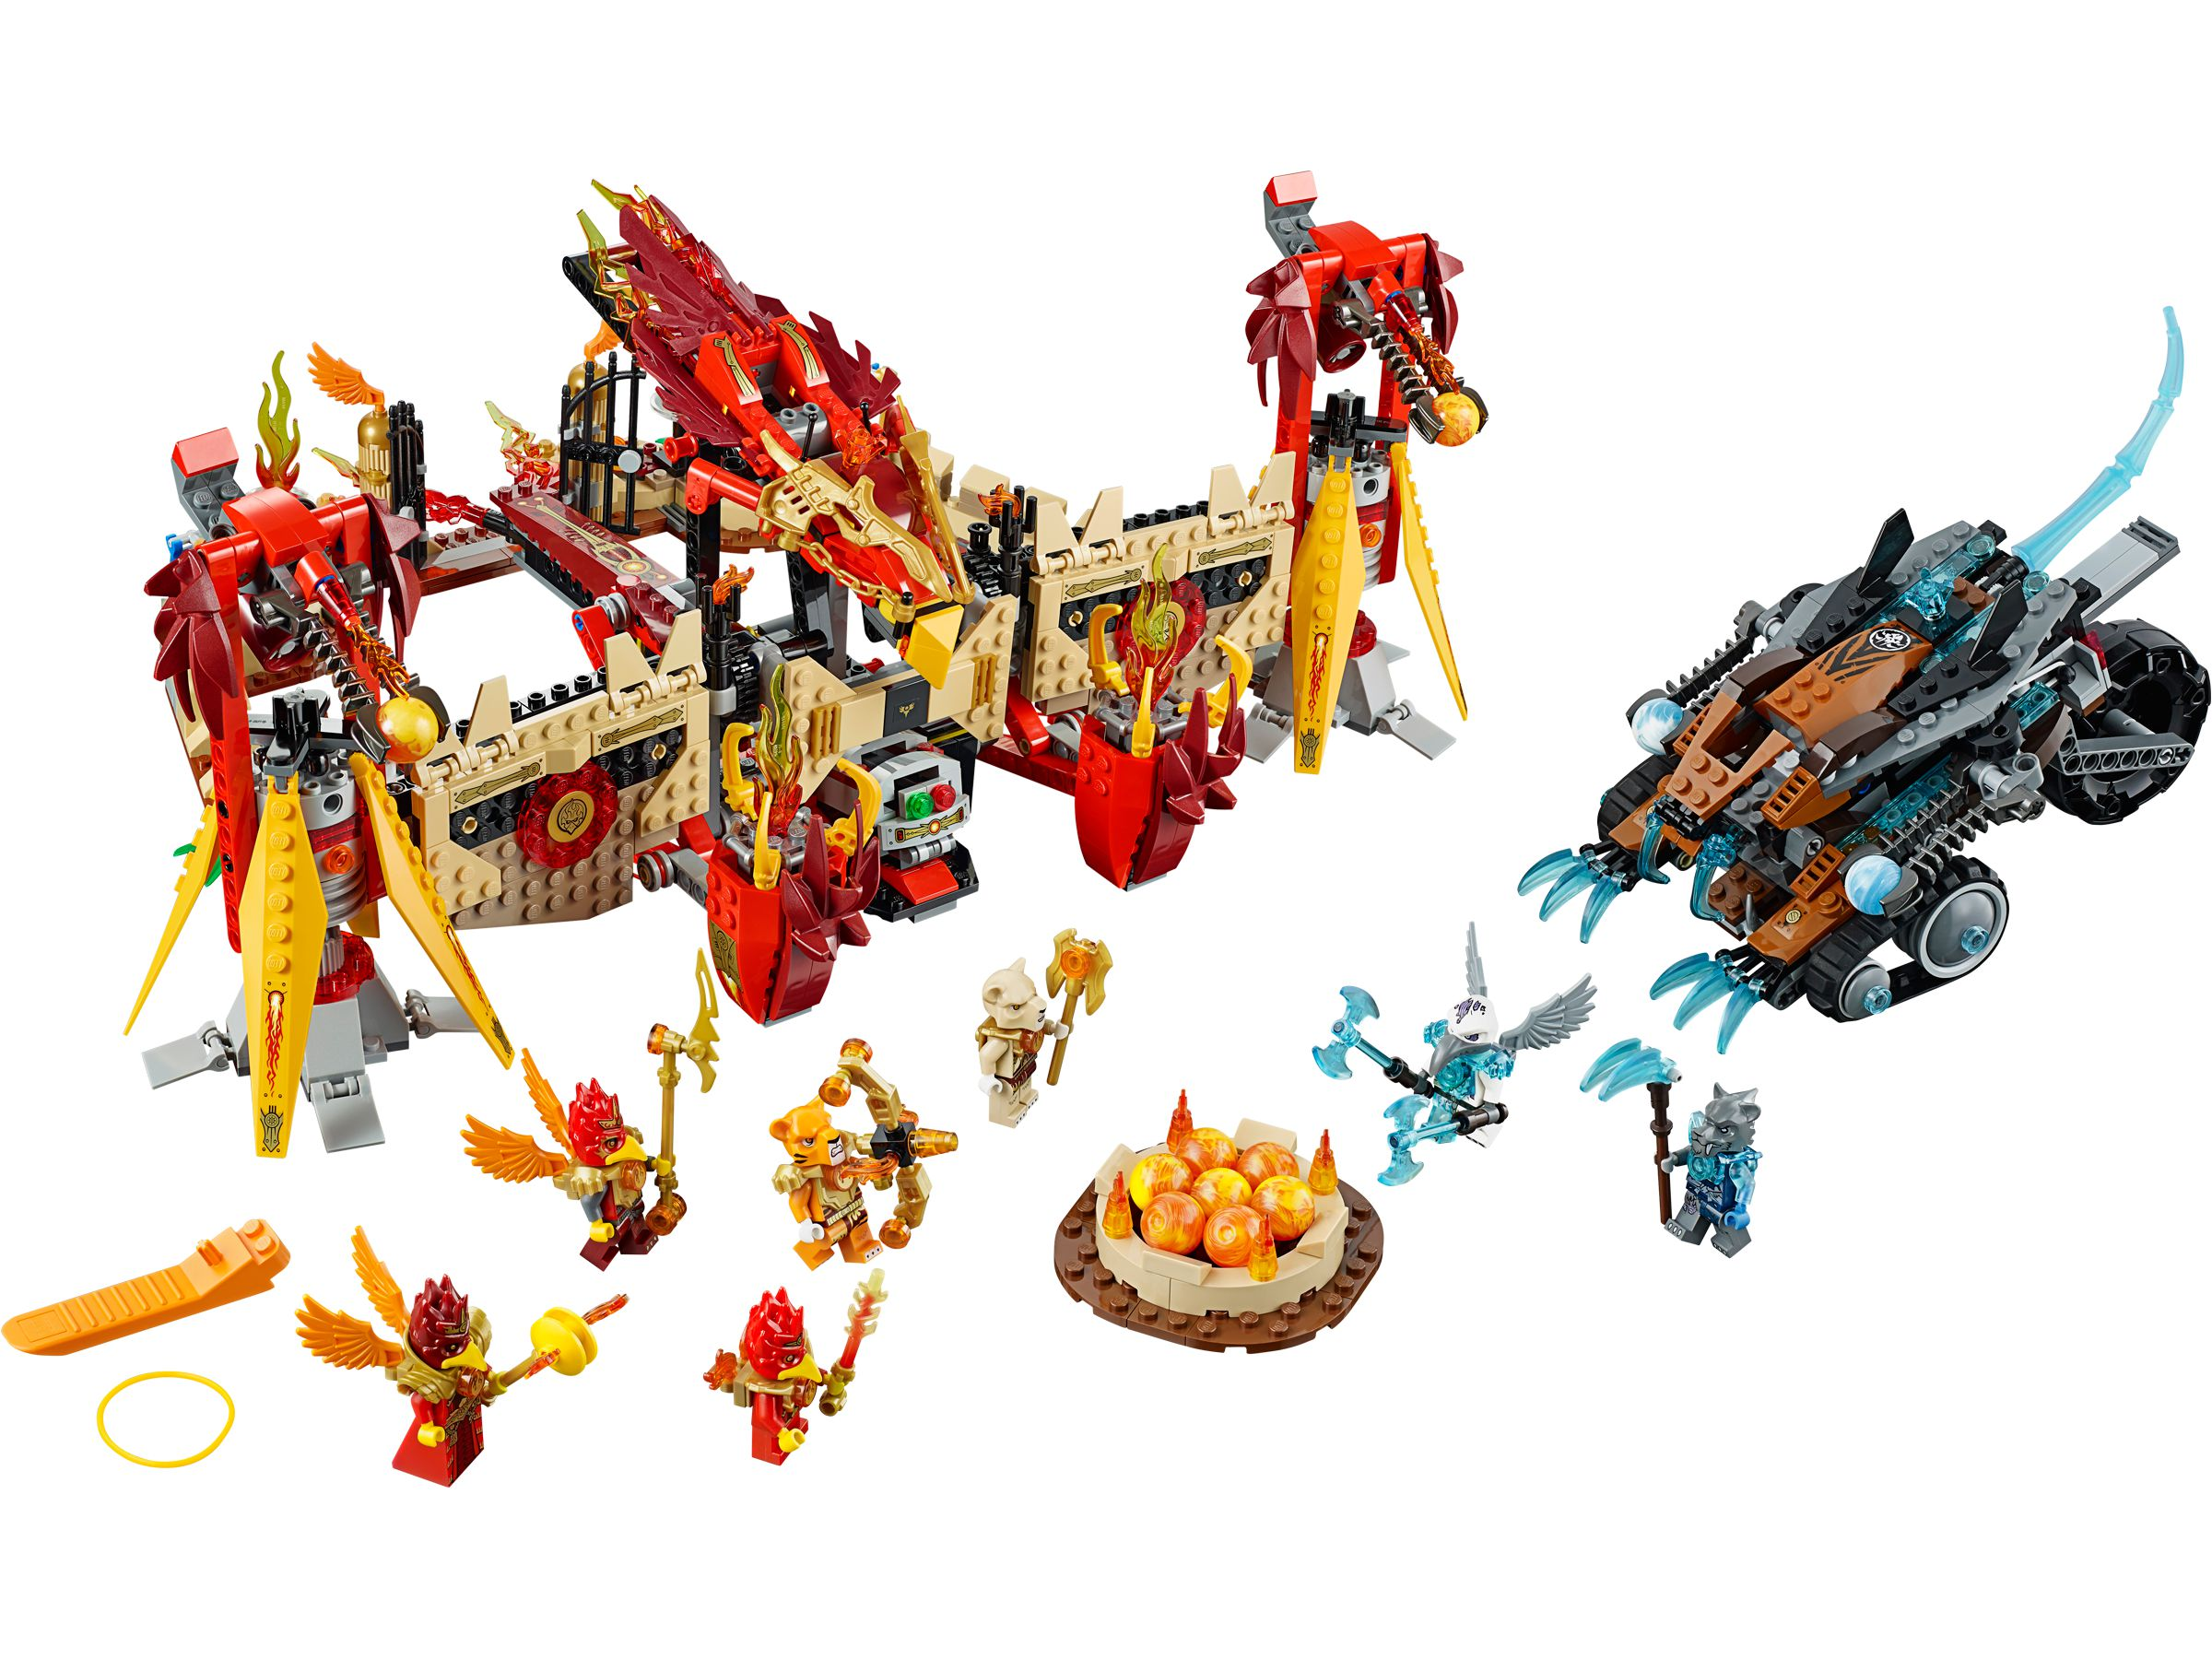 LEGO Legends Of Chima 70146 Phoenix Fliegender Feuertempel LEGO_70146.jpg